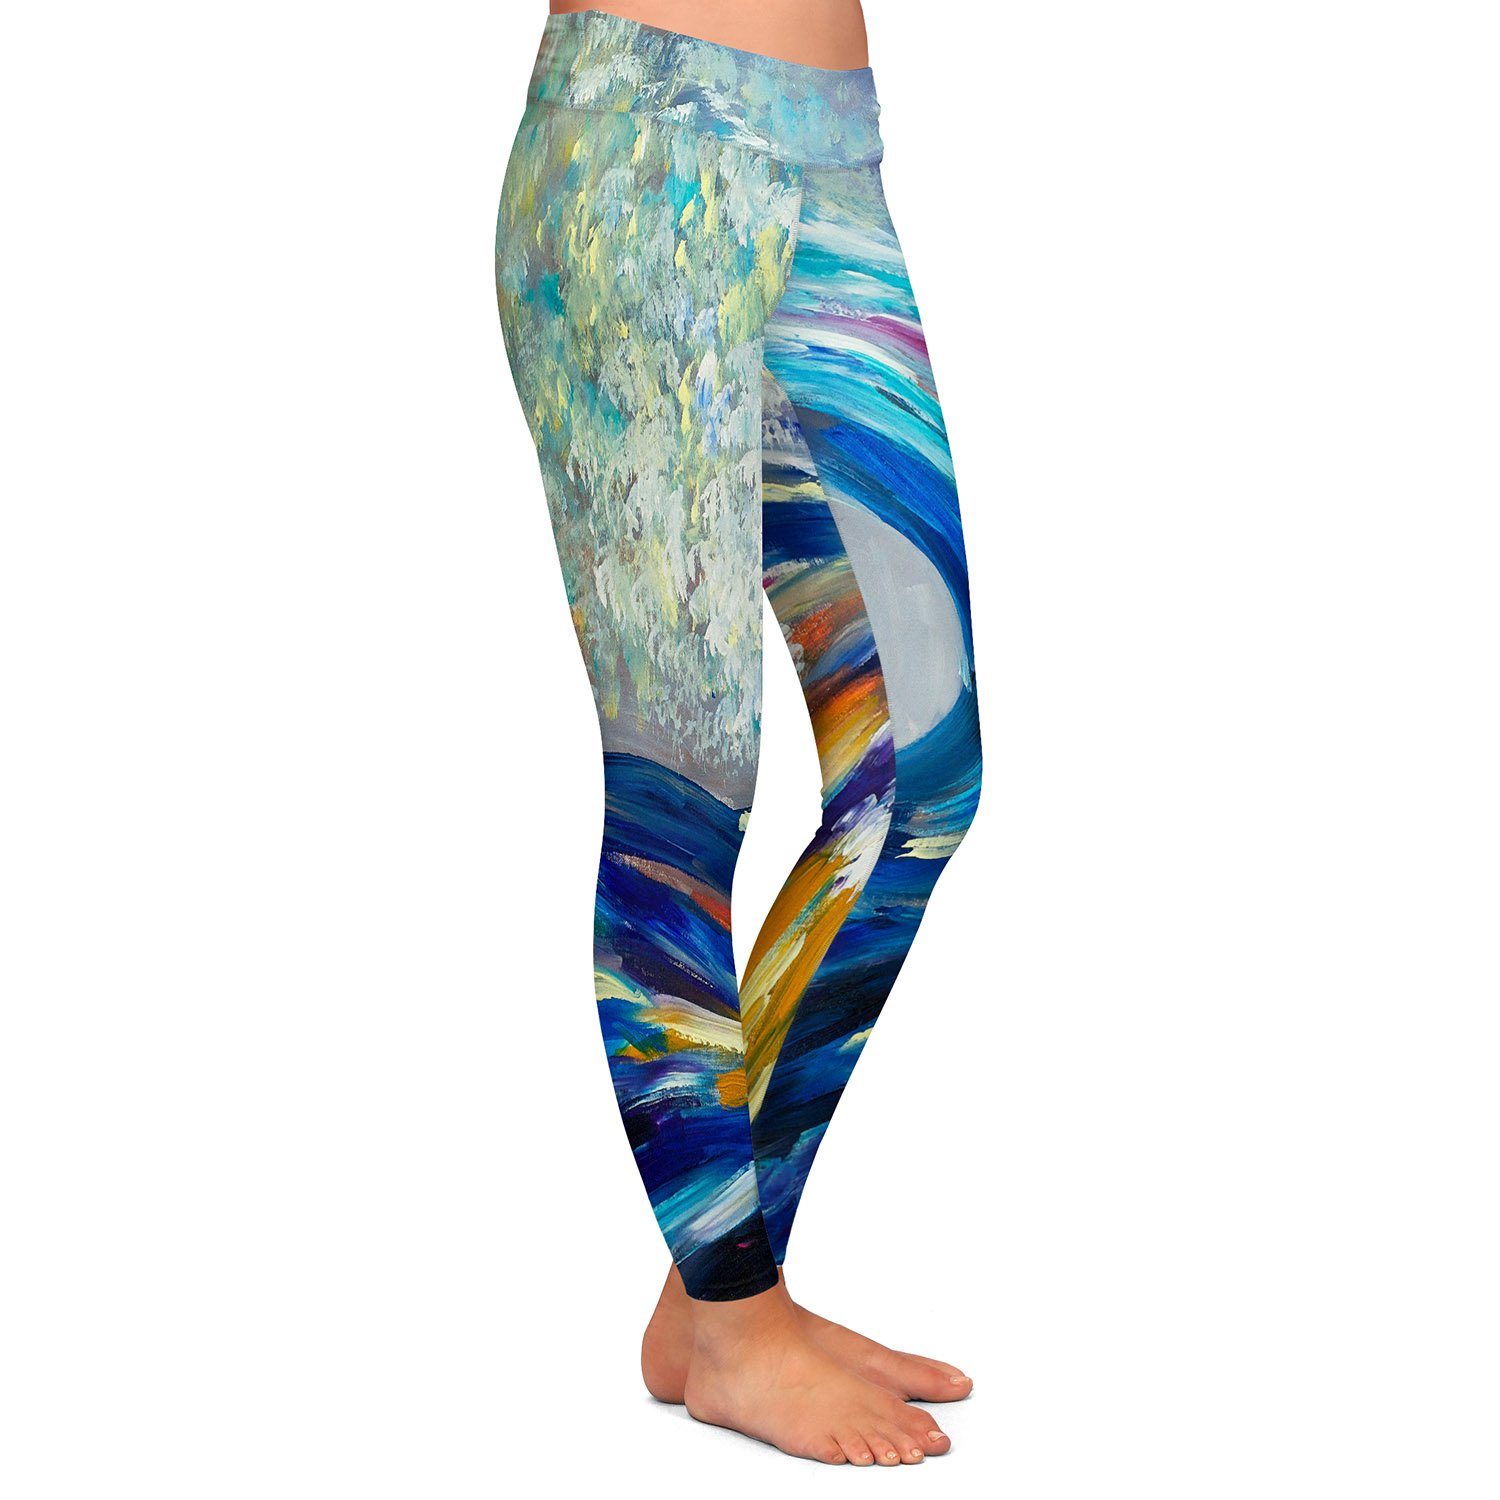 Wave Rolling Rainbow Athletic Yoga Leggings from DiaNoche Designs by Artist Lam Fuk Tim